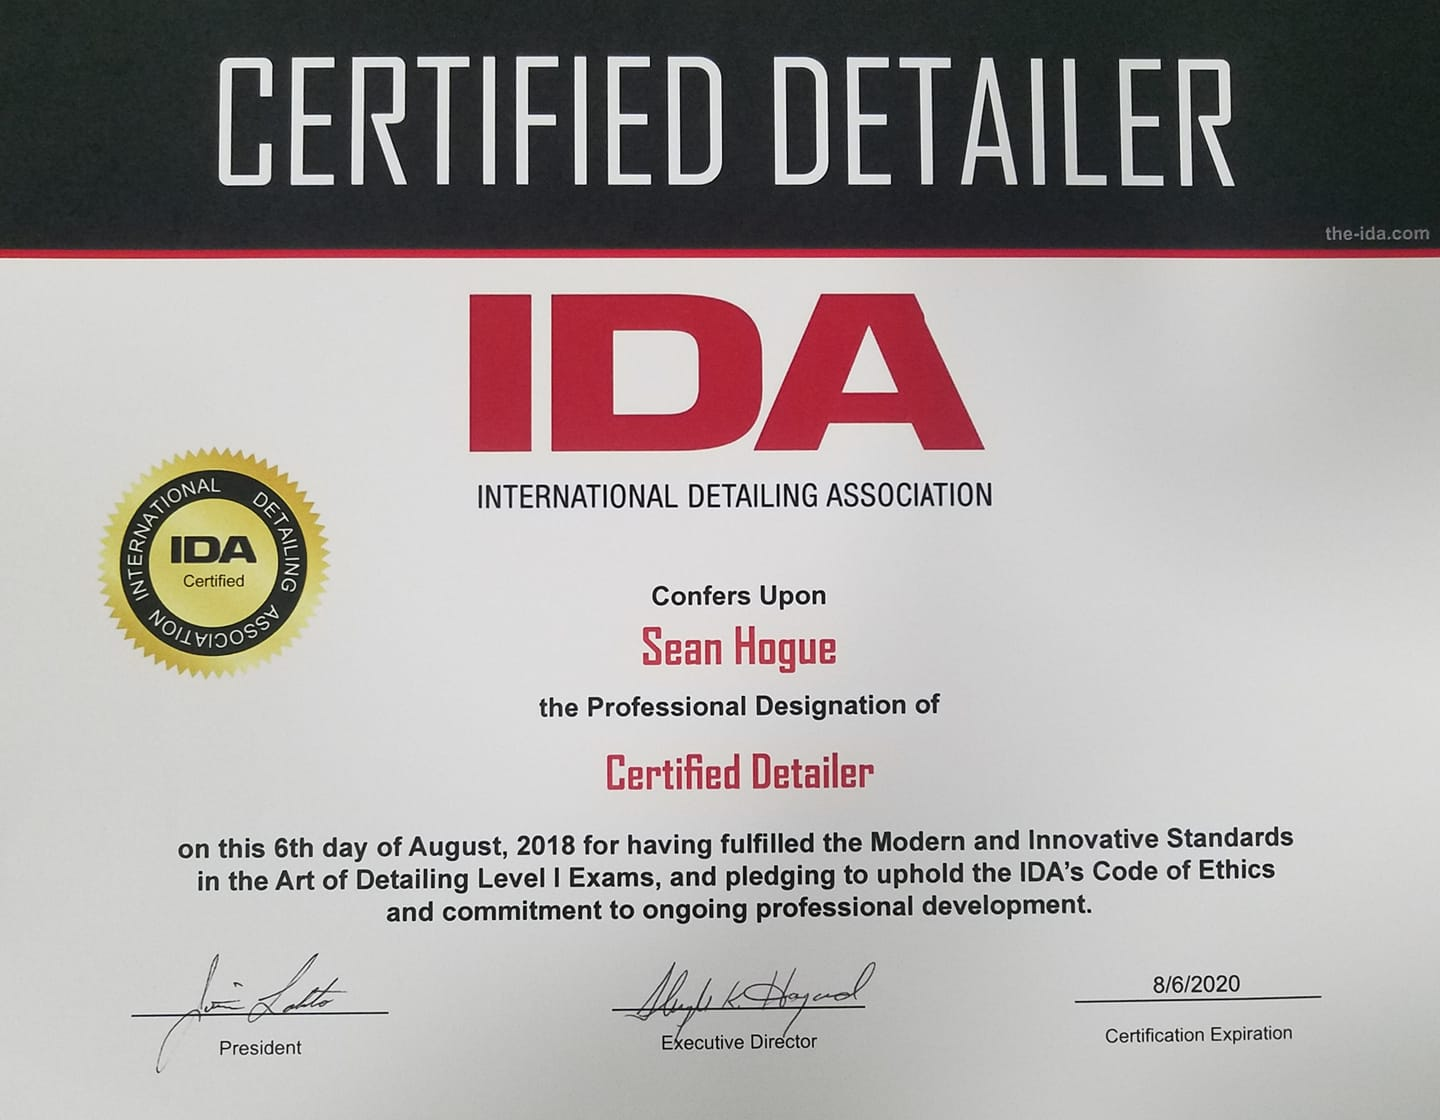 International Detailing Association Member